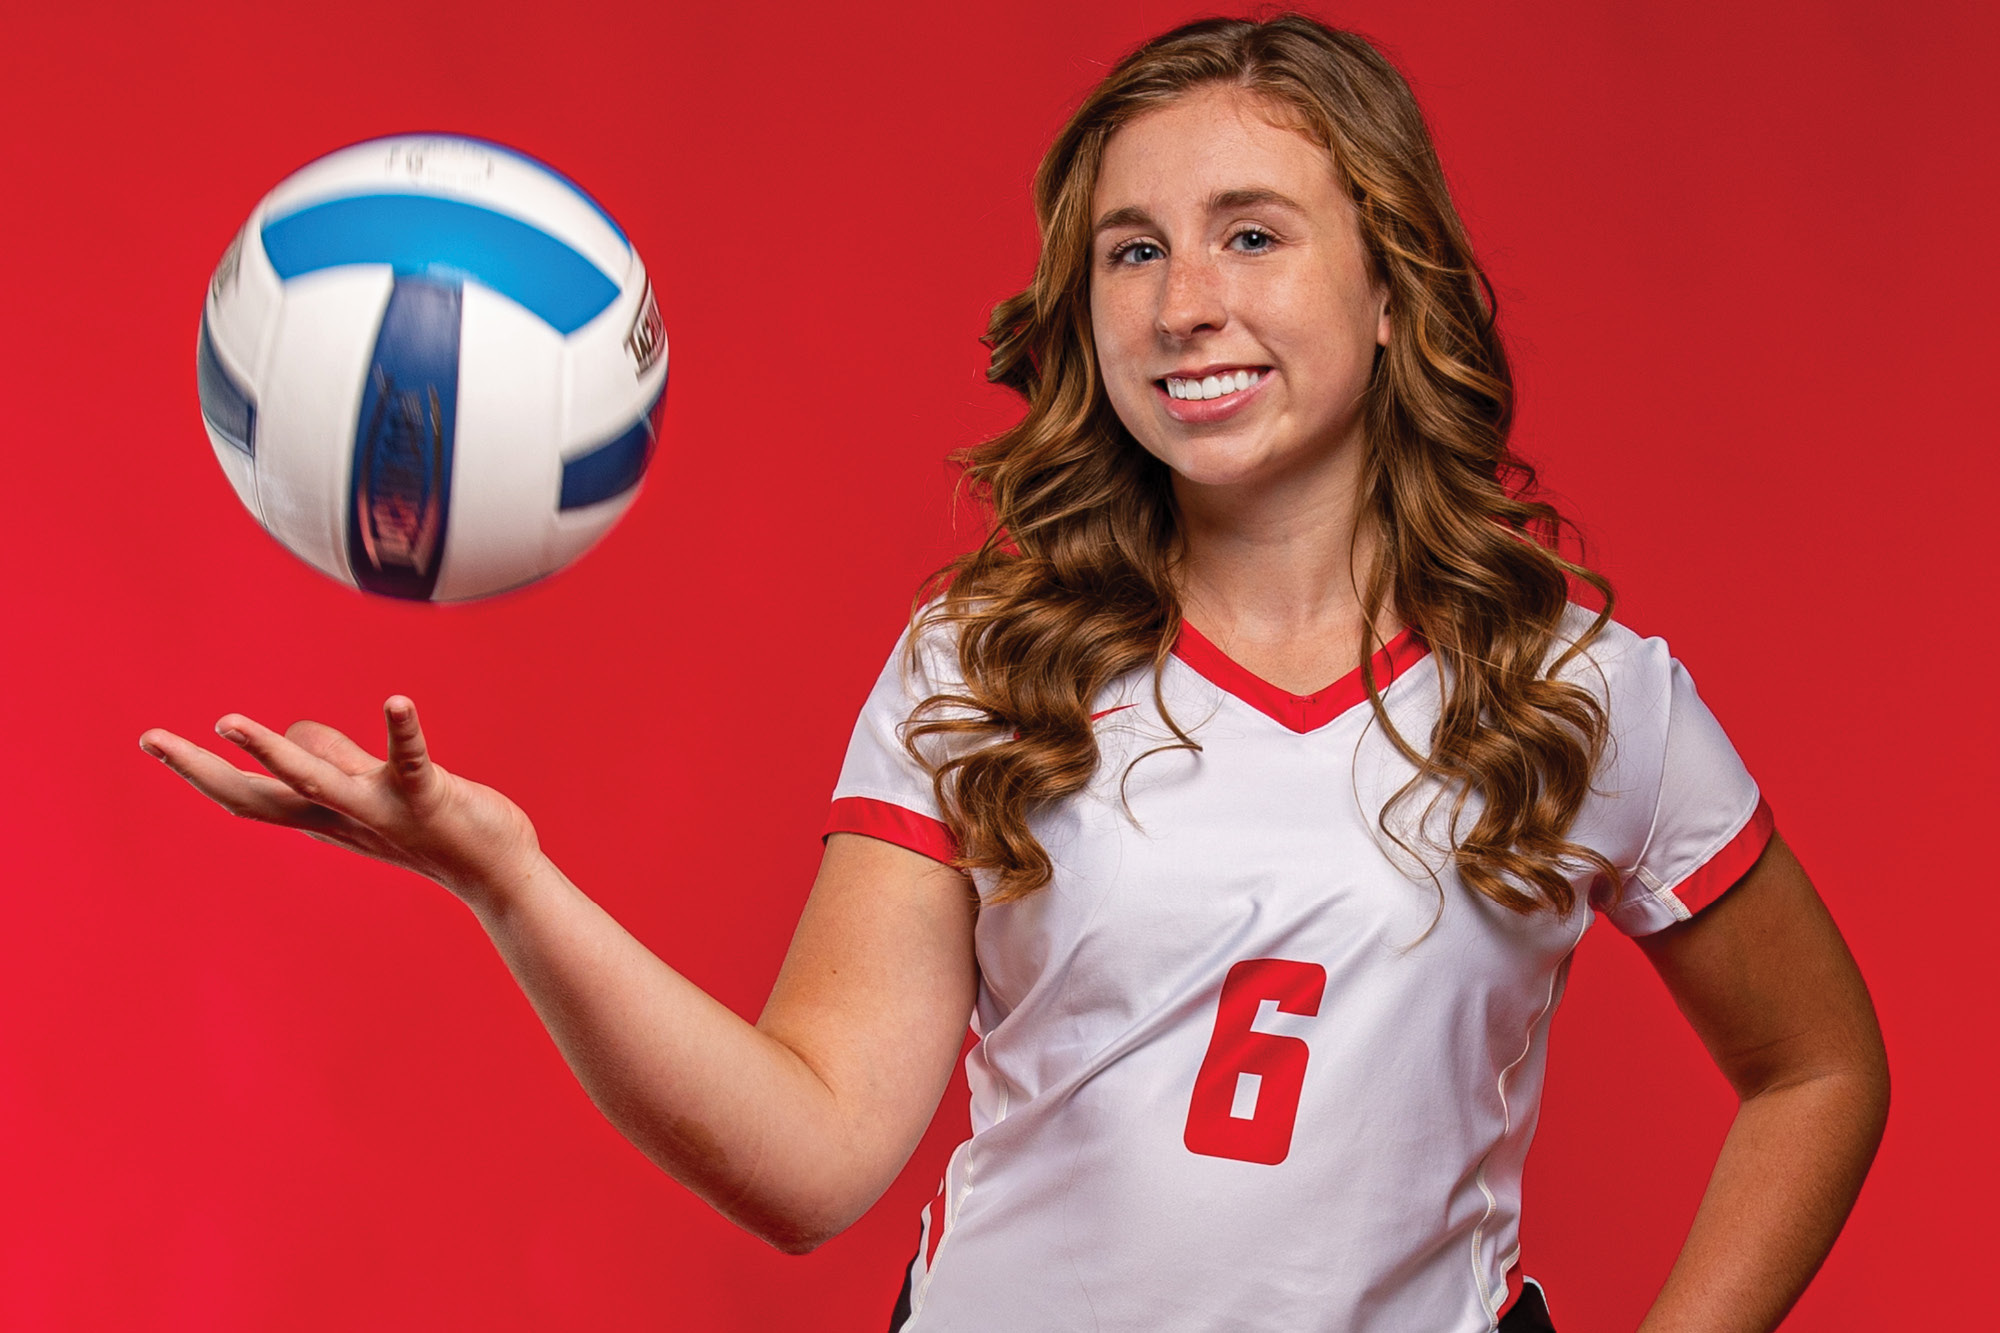 Photo of Casper College volleyball player Kylie Watson tossing up a volleyball